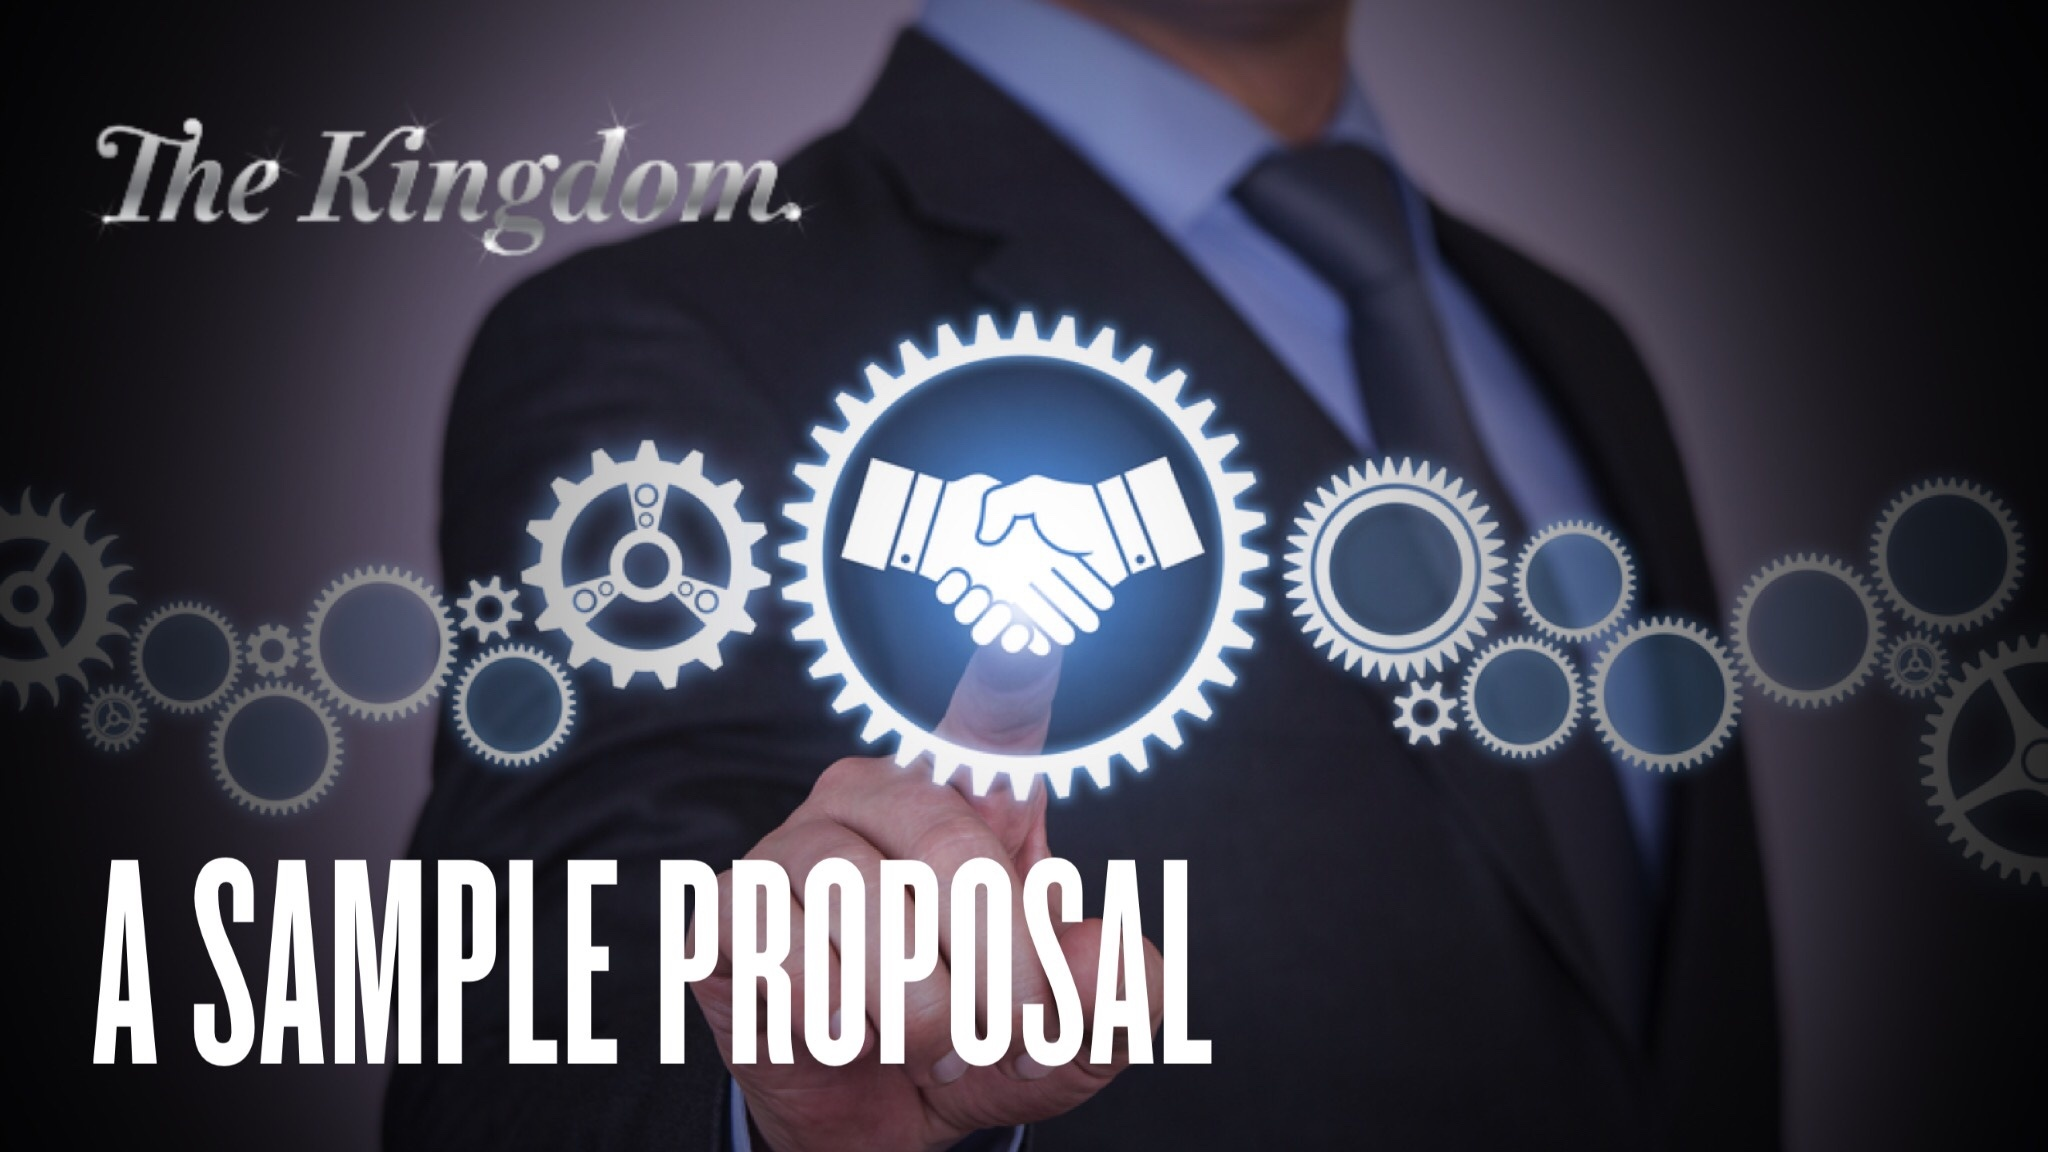 The Kingdom HubSpot proposal